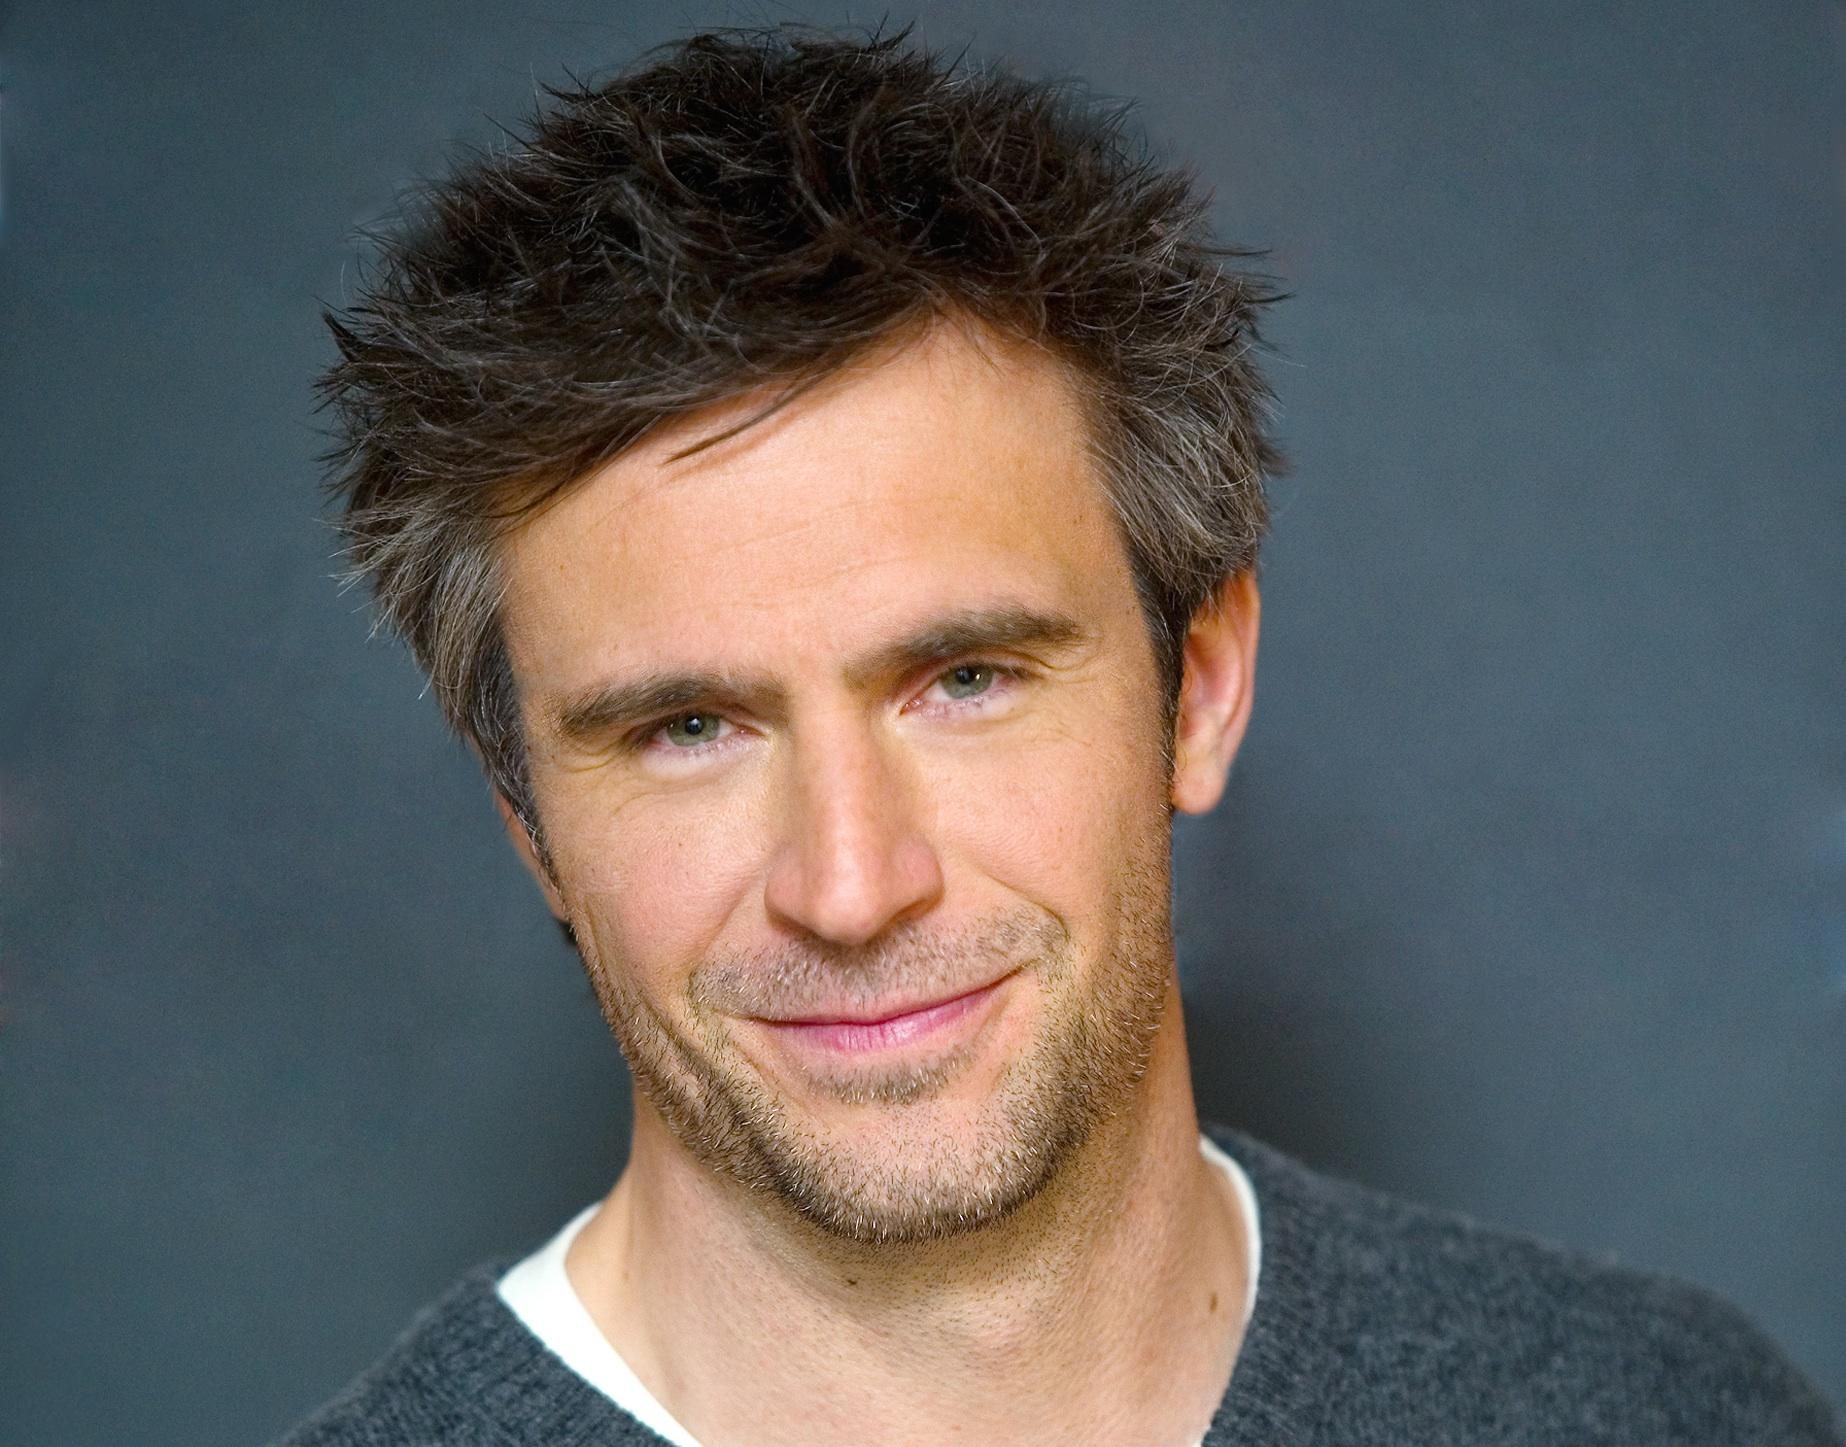 Jack Davenport To Co-Star In HBO's Sarah Silverman Pilot; Kerri Kenney Also Cast